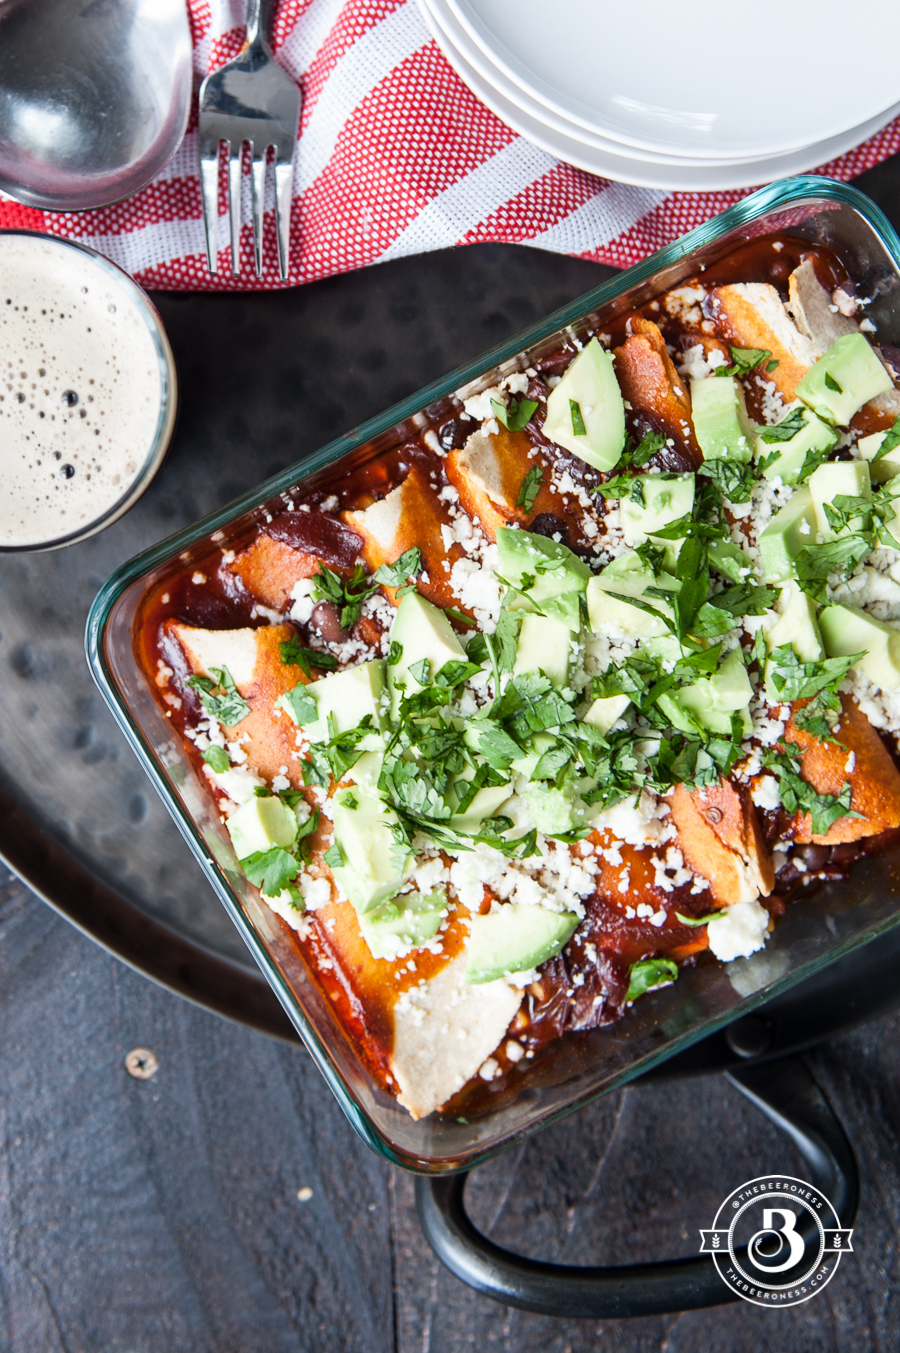 Corn and Black Bean Enchiladas with Chipotle Stout Red Sauce + 26 Recipes for a Vegetarian Cinco de Mayo